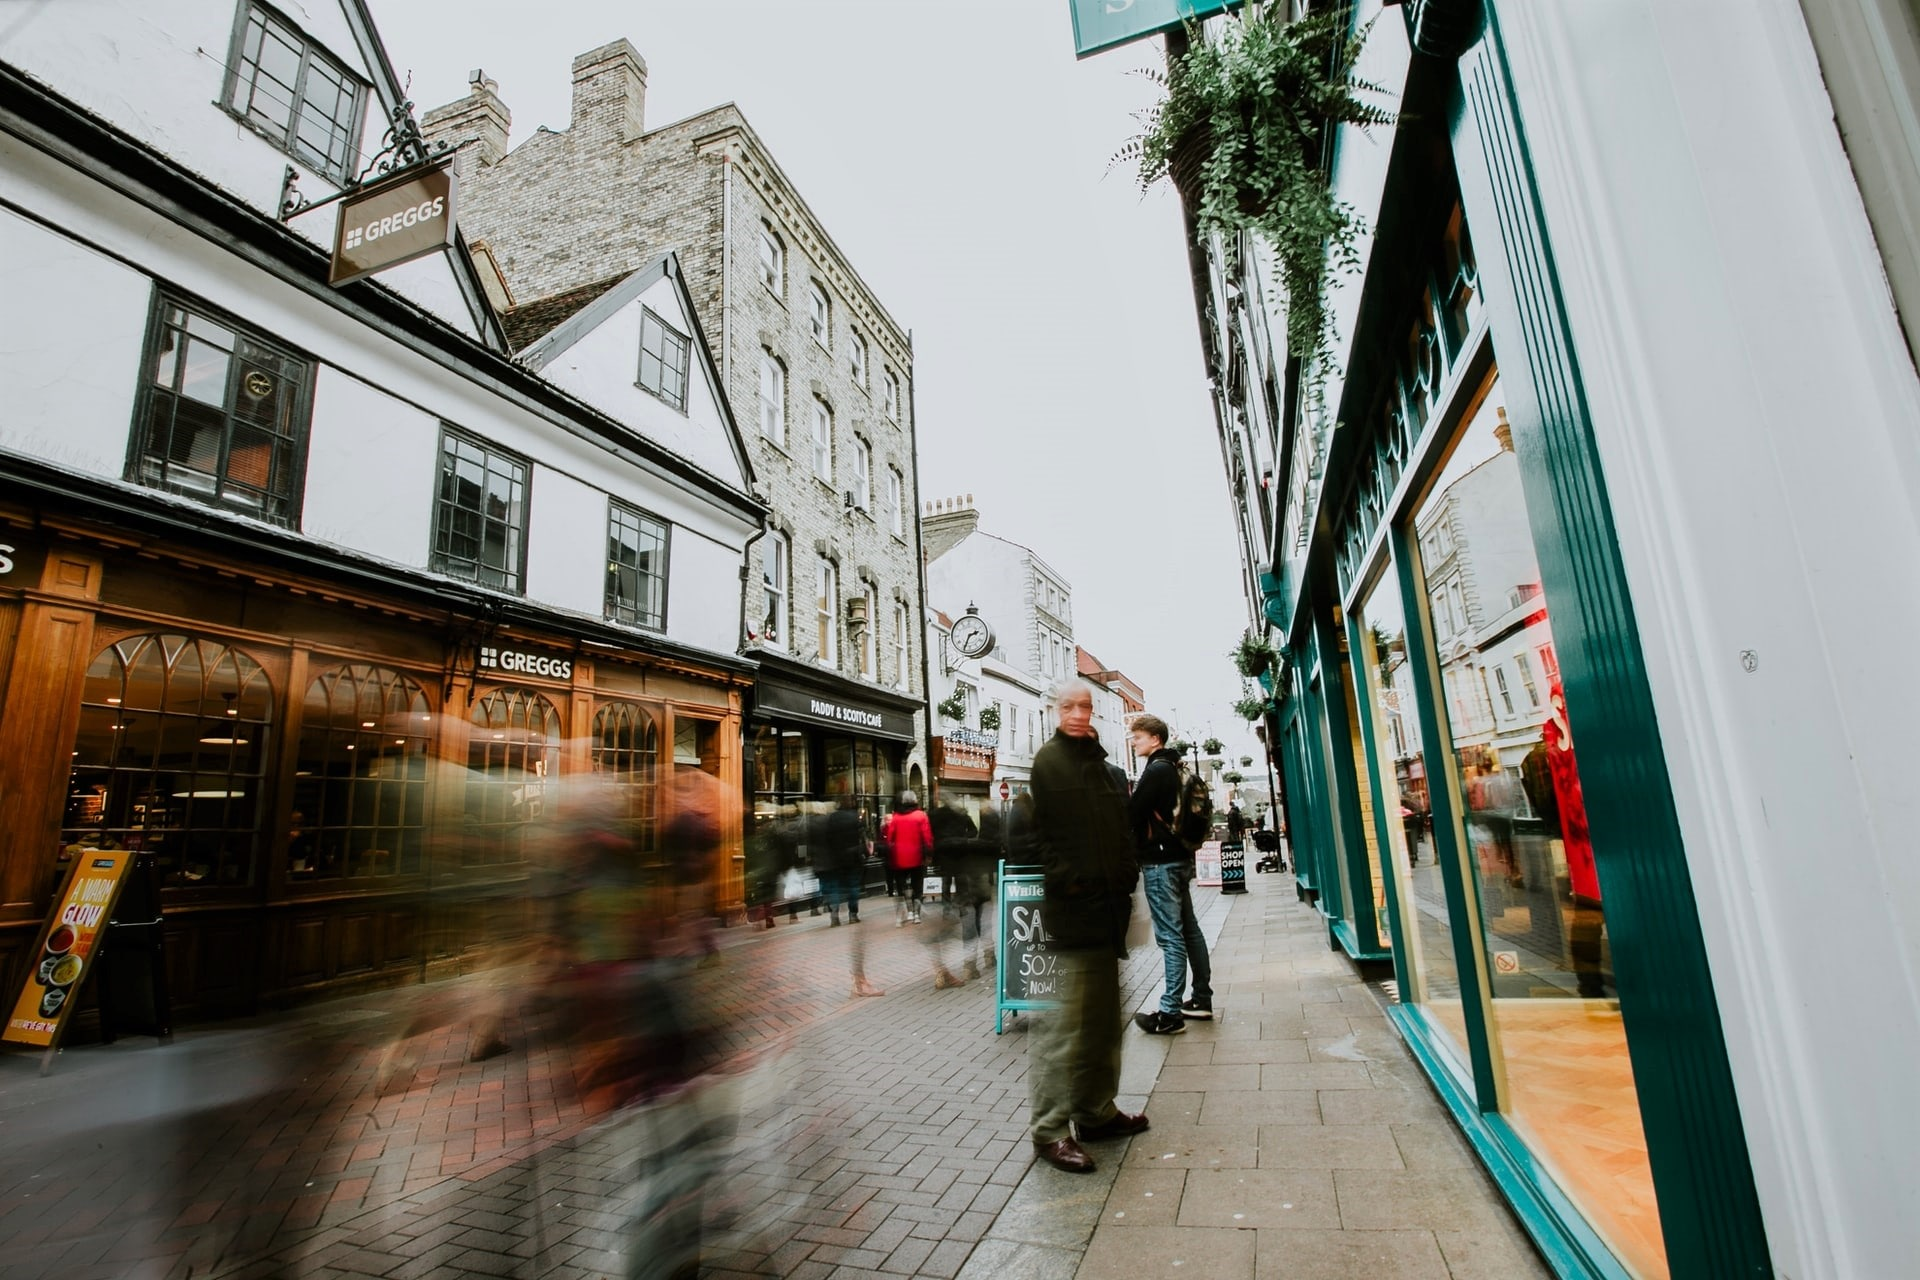 people-rushing-about-busy-british-high-street-with-a-greggs-in-bury-st-edmunds